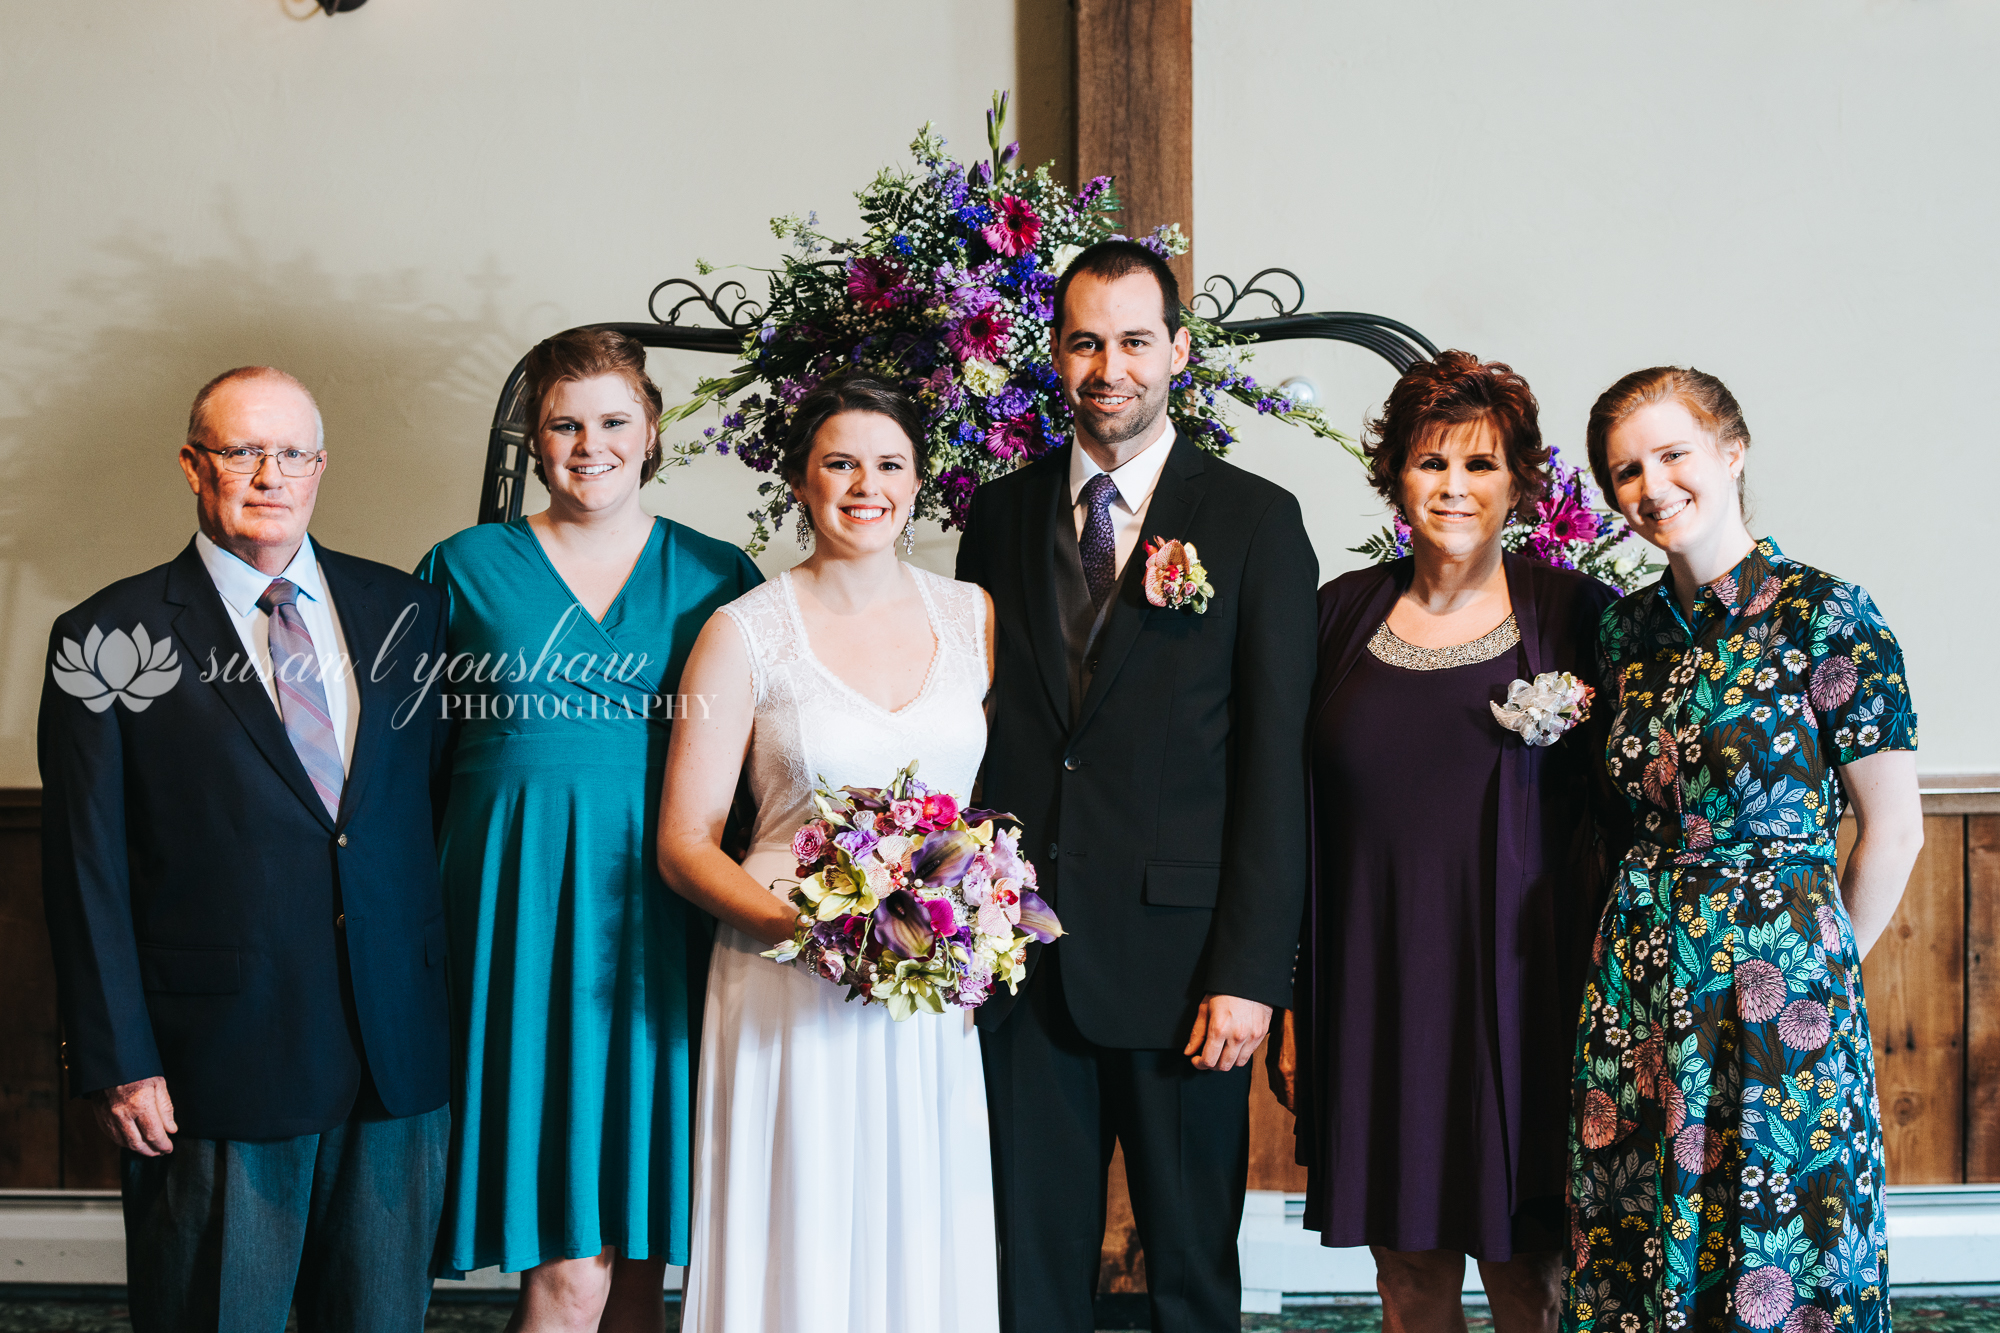 Adena and  Erik Wedding 05-17-2019 SLY Photography-47.jpg